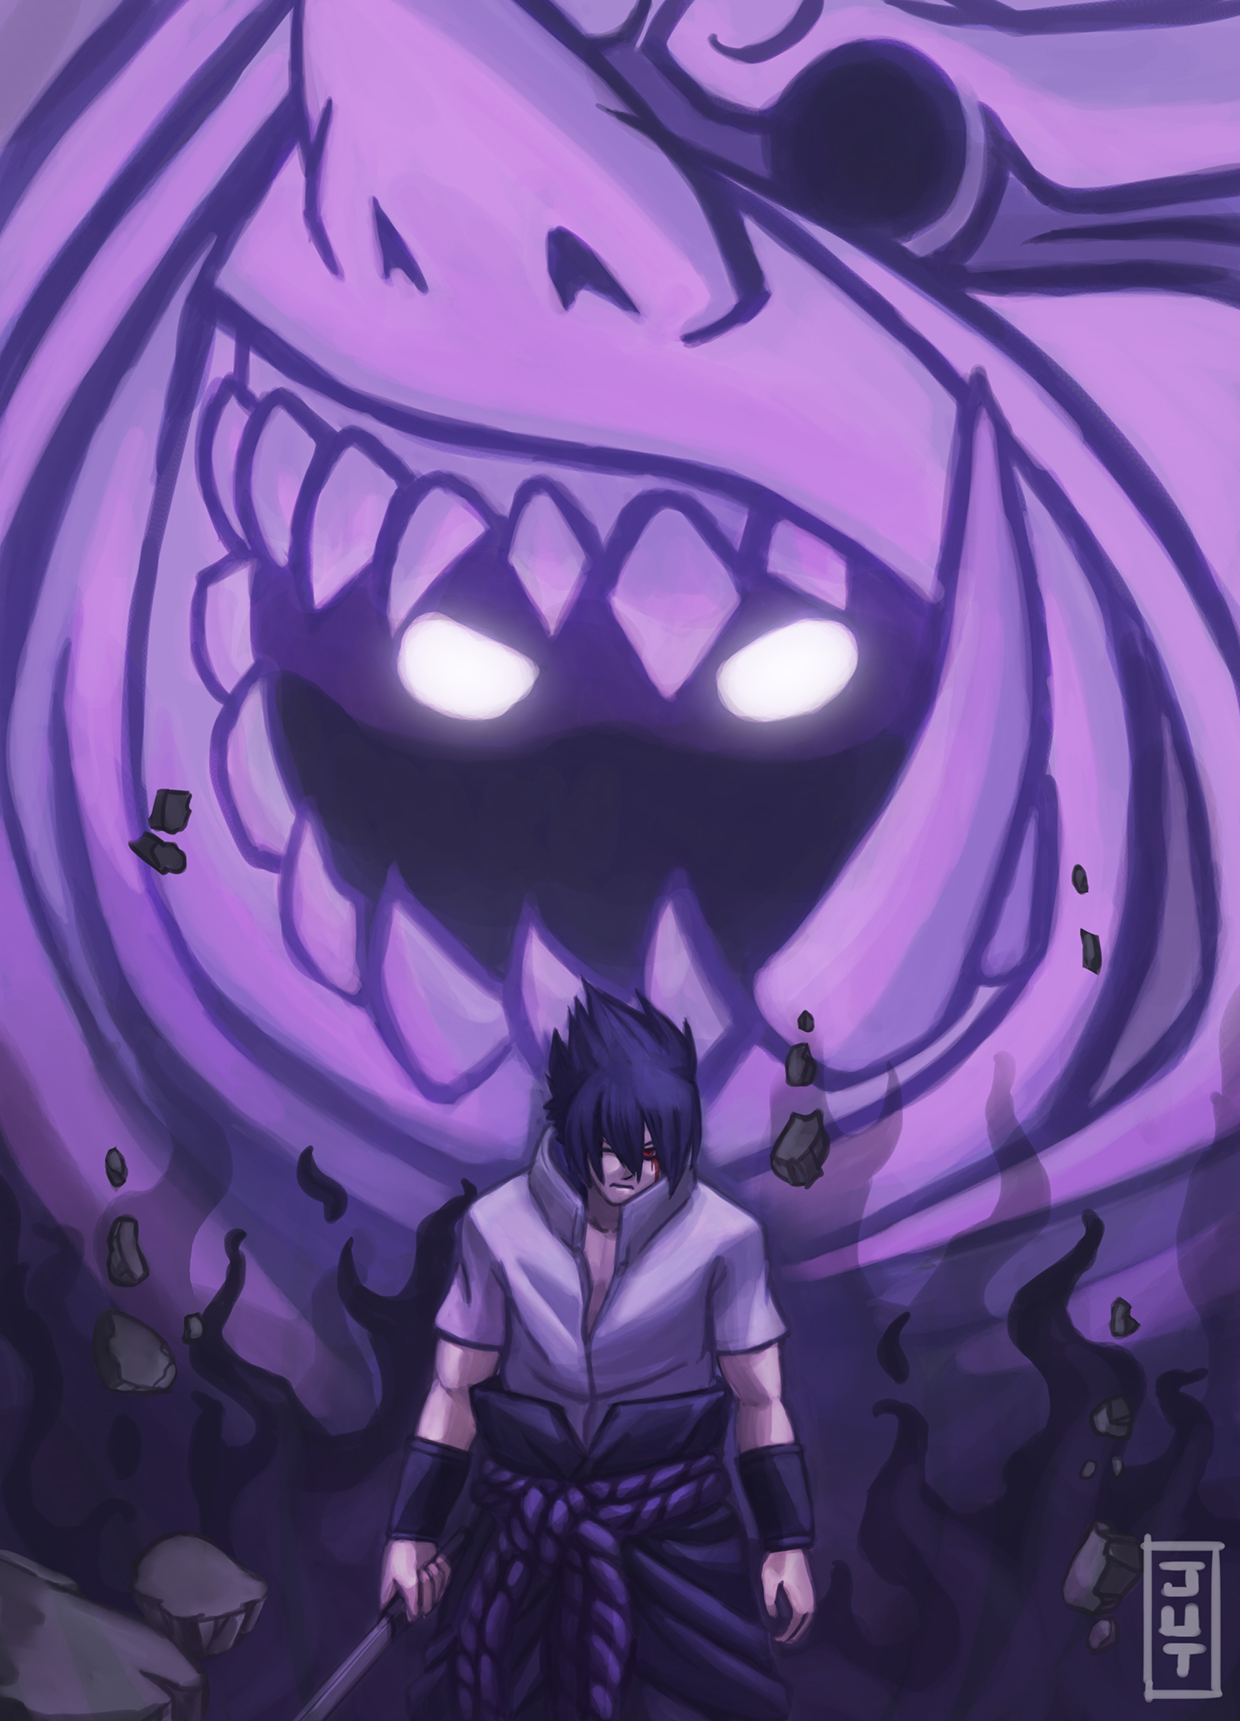 Uchiha Sasuke - digitalart, digitalillustration - juliastorybored | ello